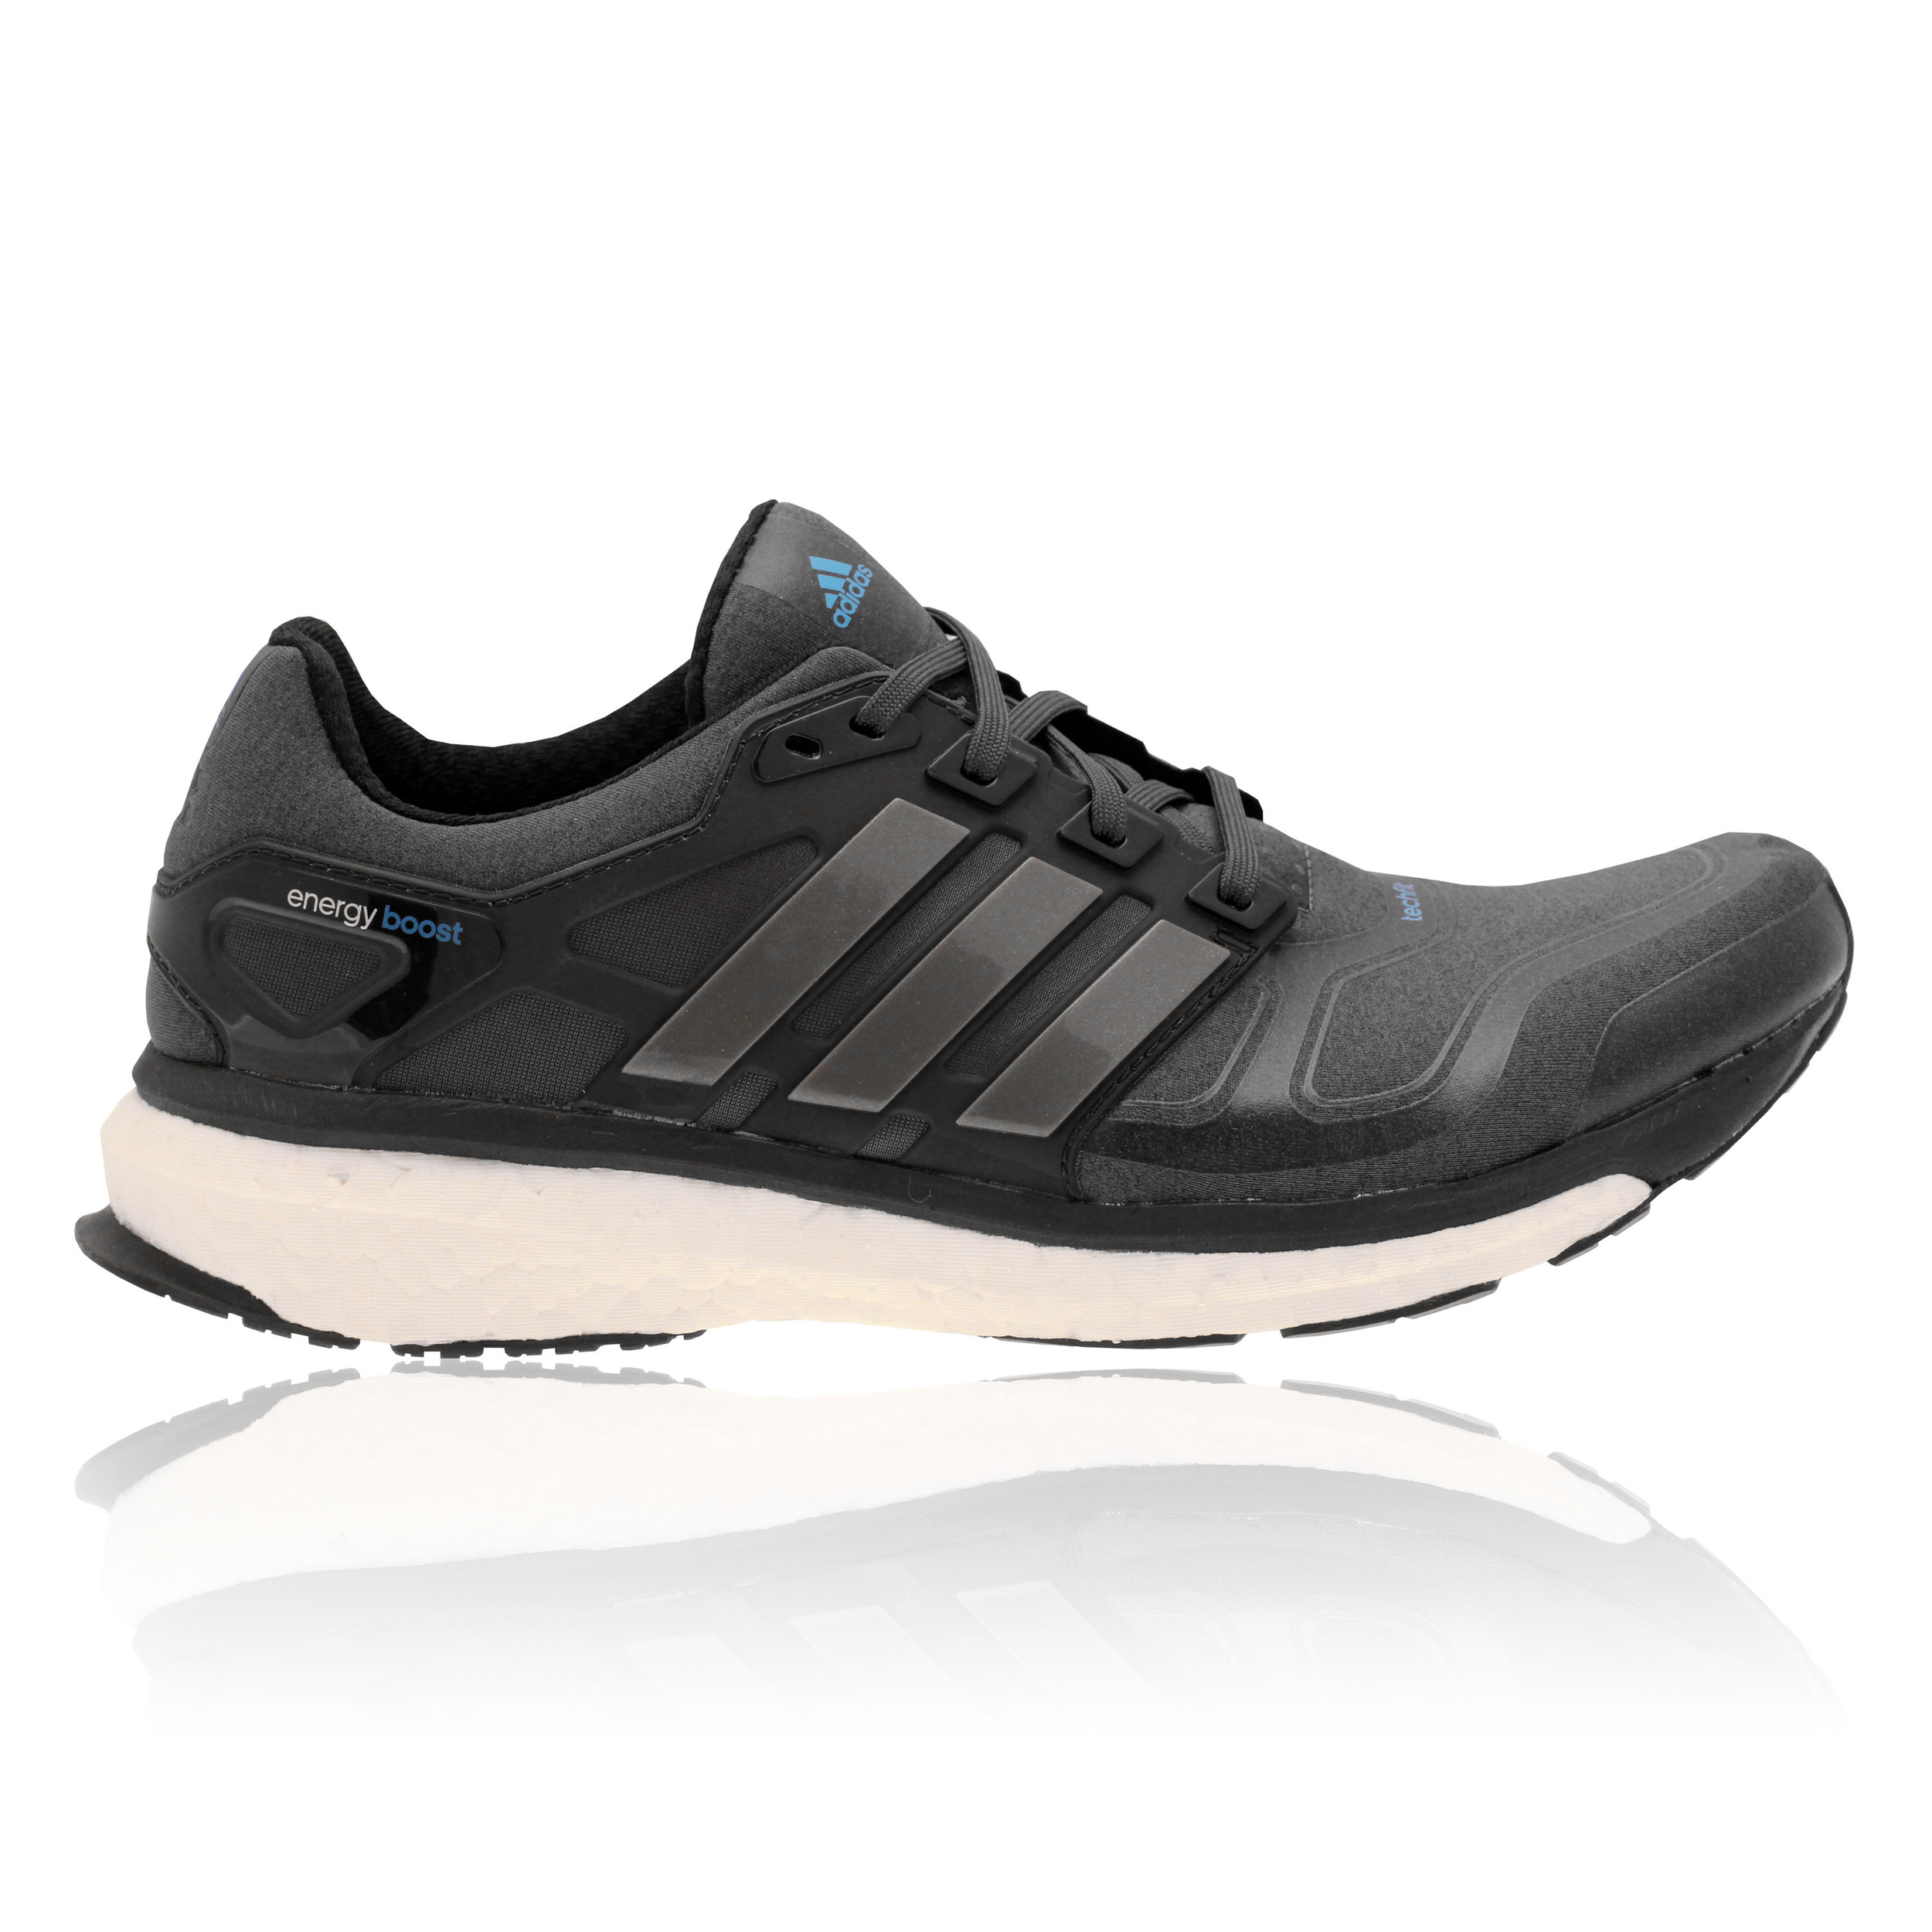 Adidas Energy Boost Shoes Women